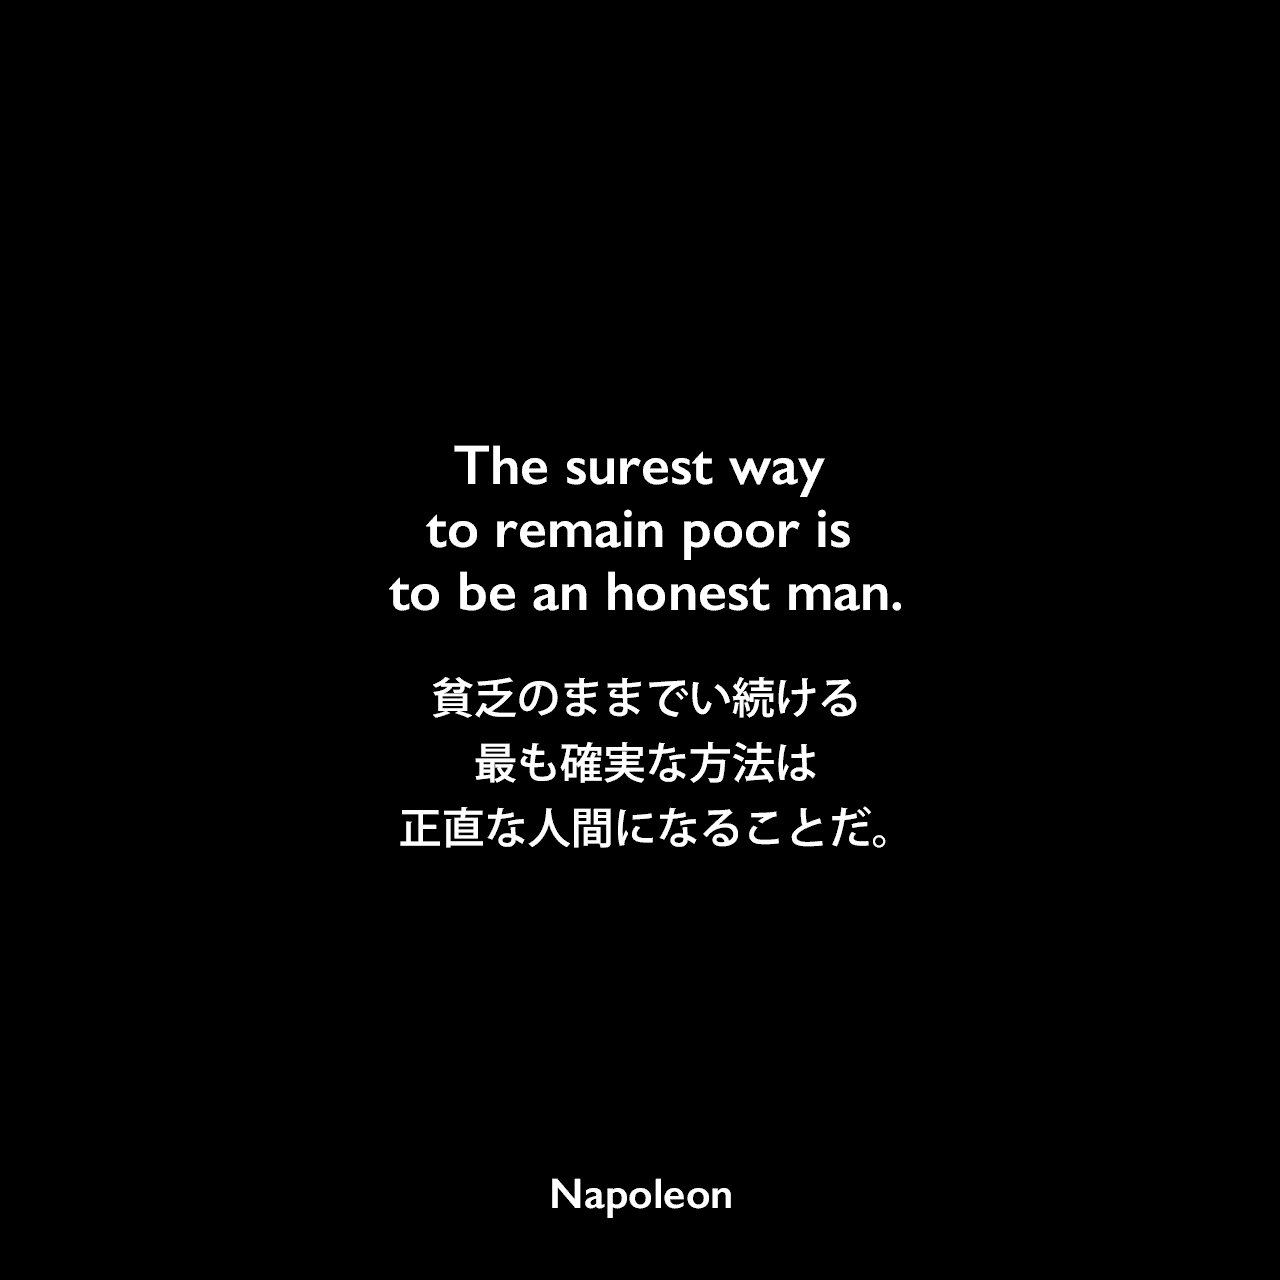 The surest way to remain poor is to be an honest man.貧乏のままでい続ける最も確実な方法は、正直な人間になることだ。Napoleon